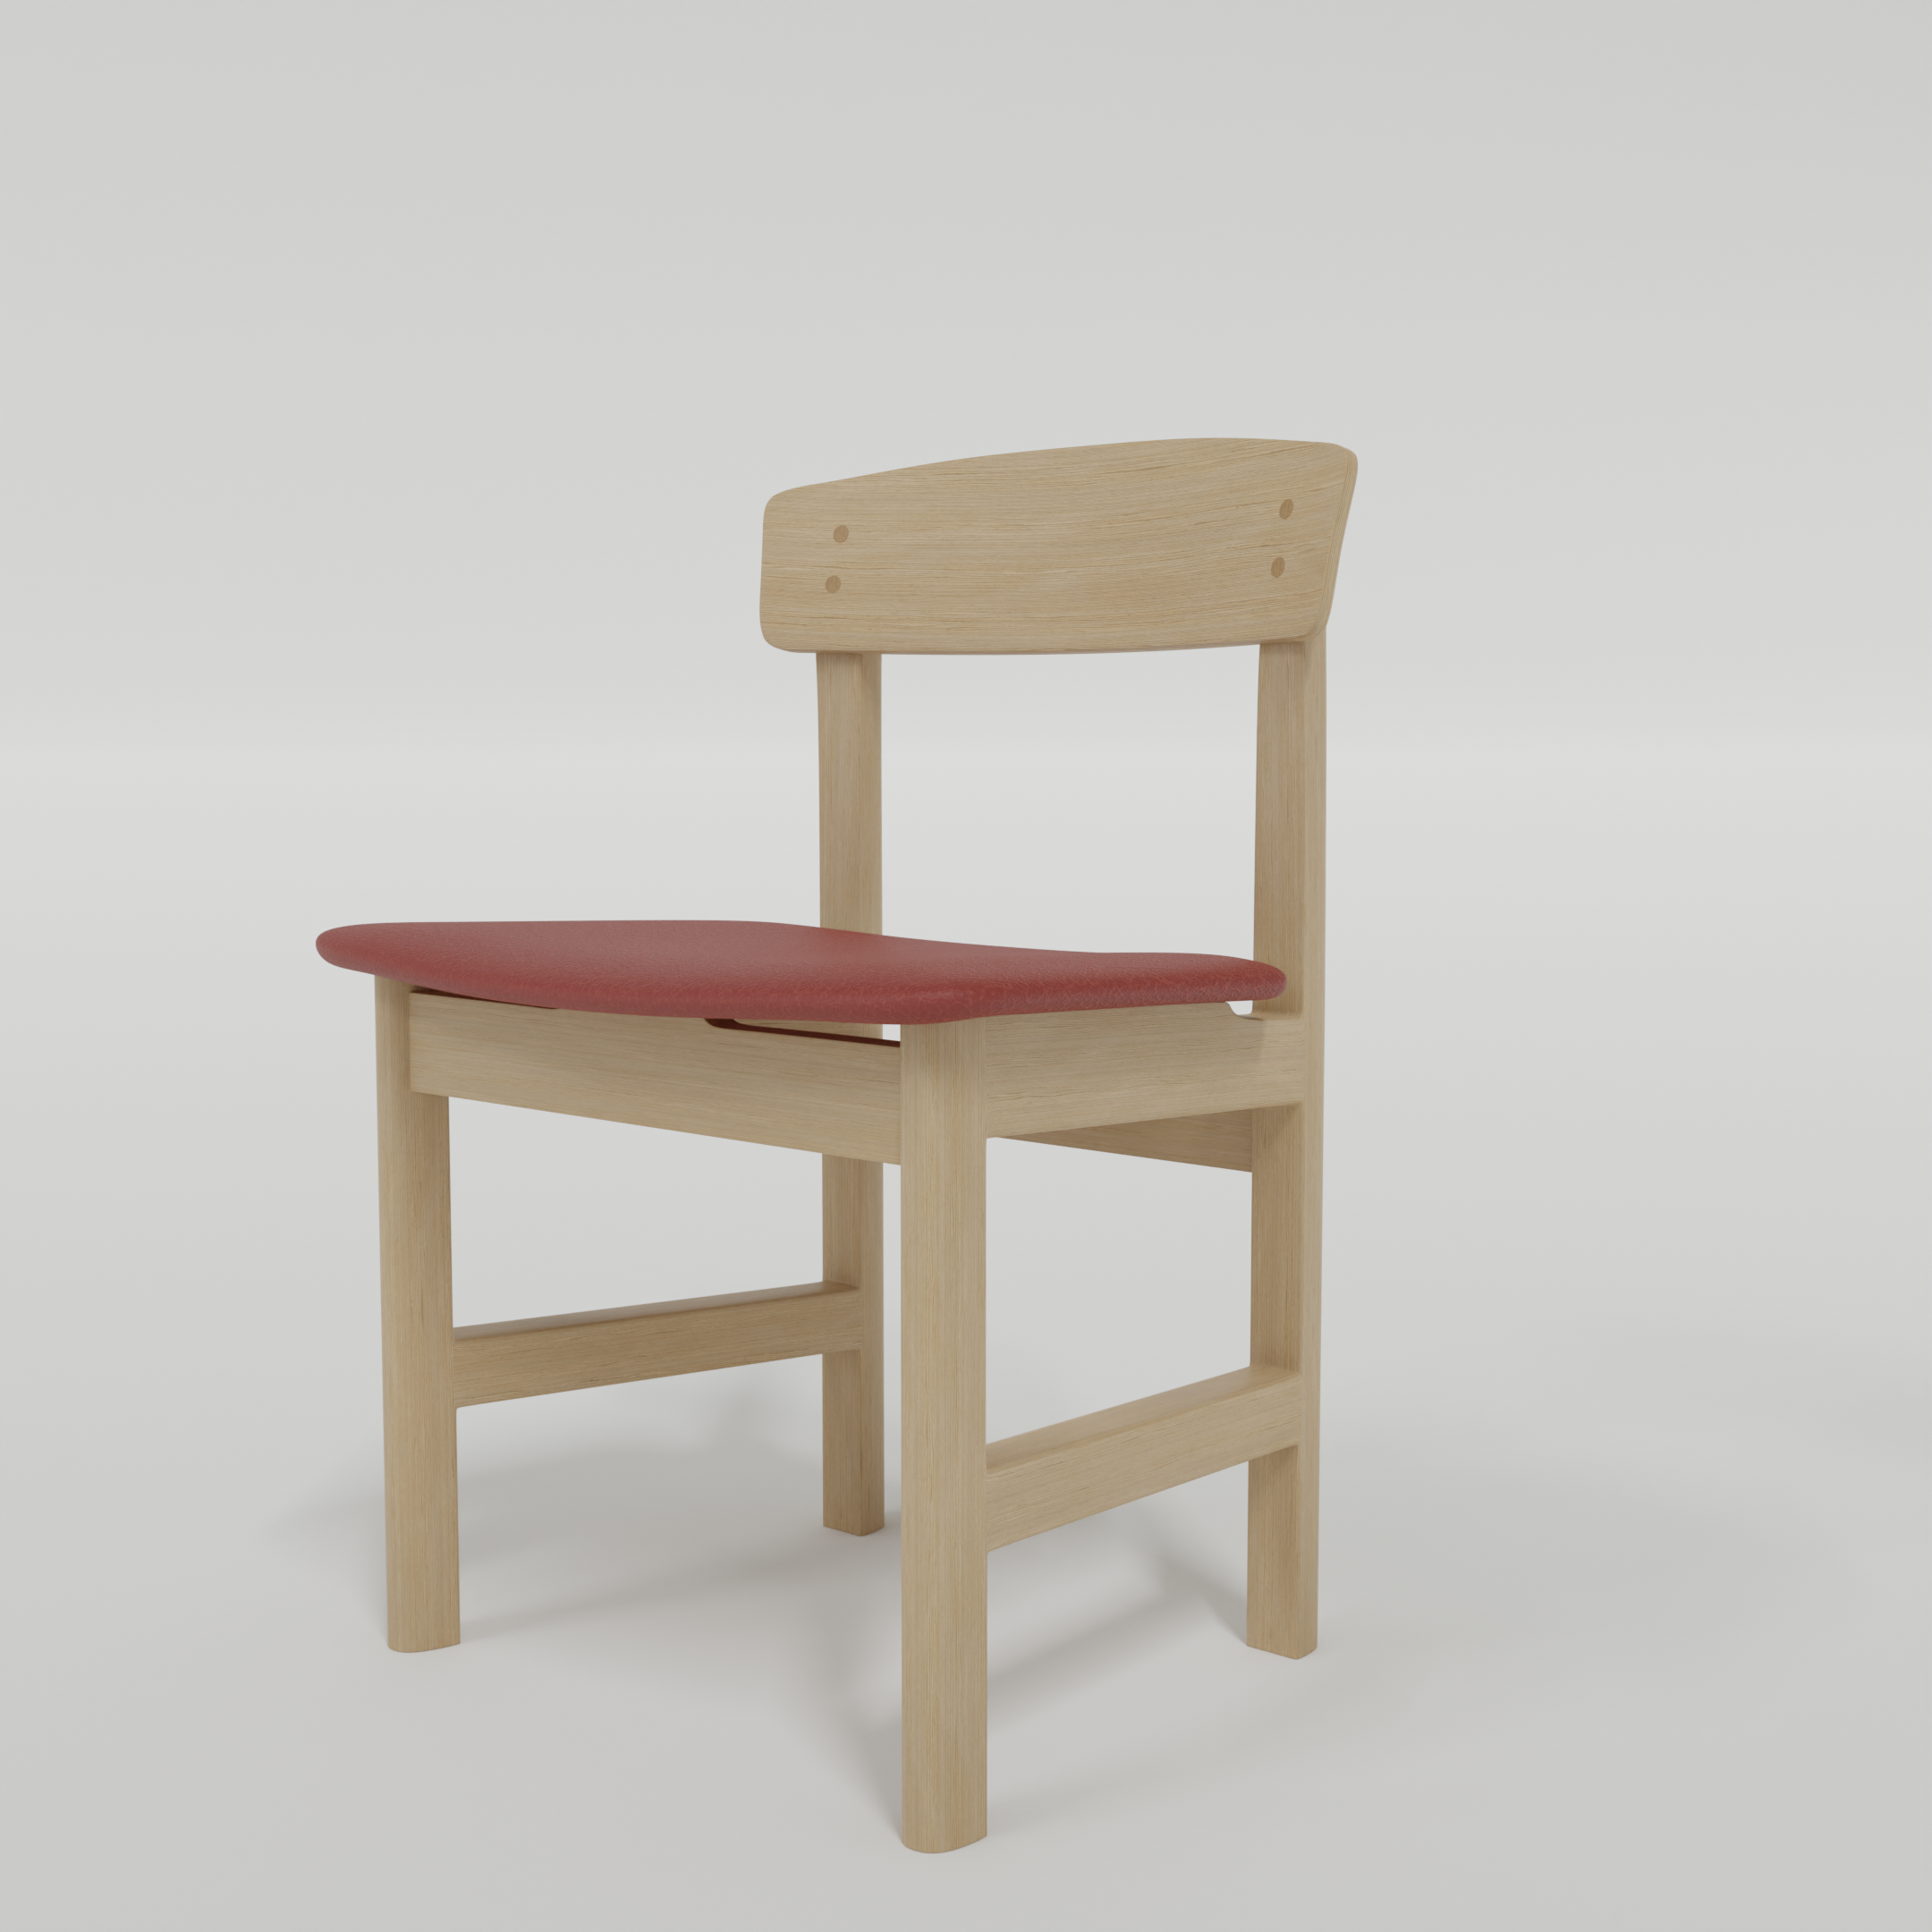 Mogensen Chair preview image 1